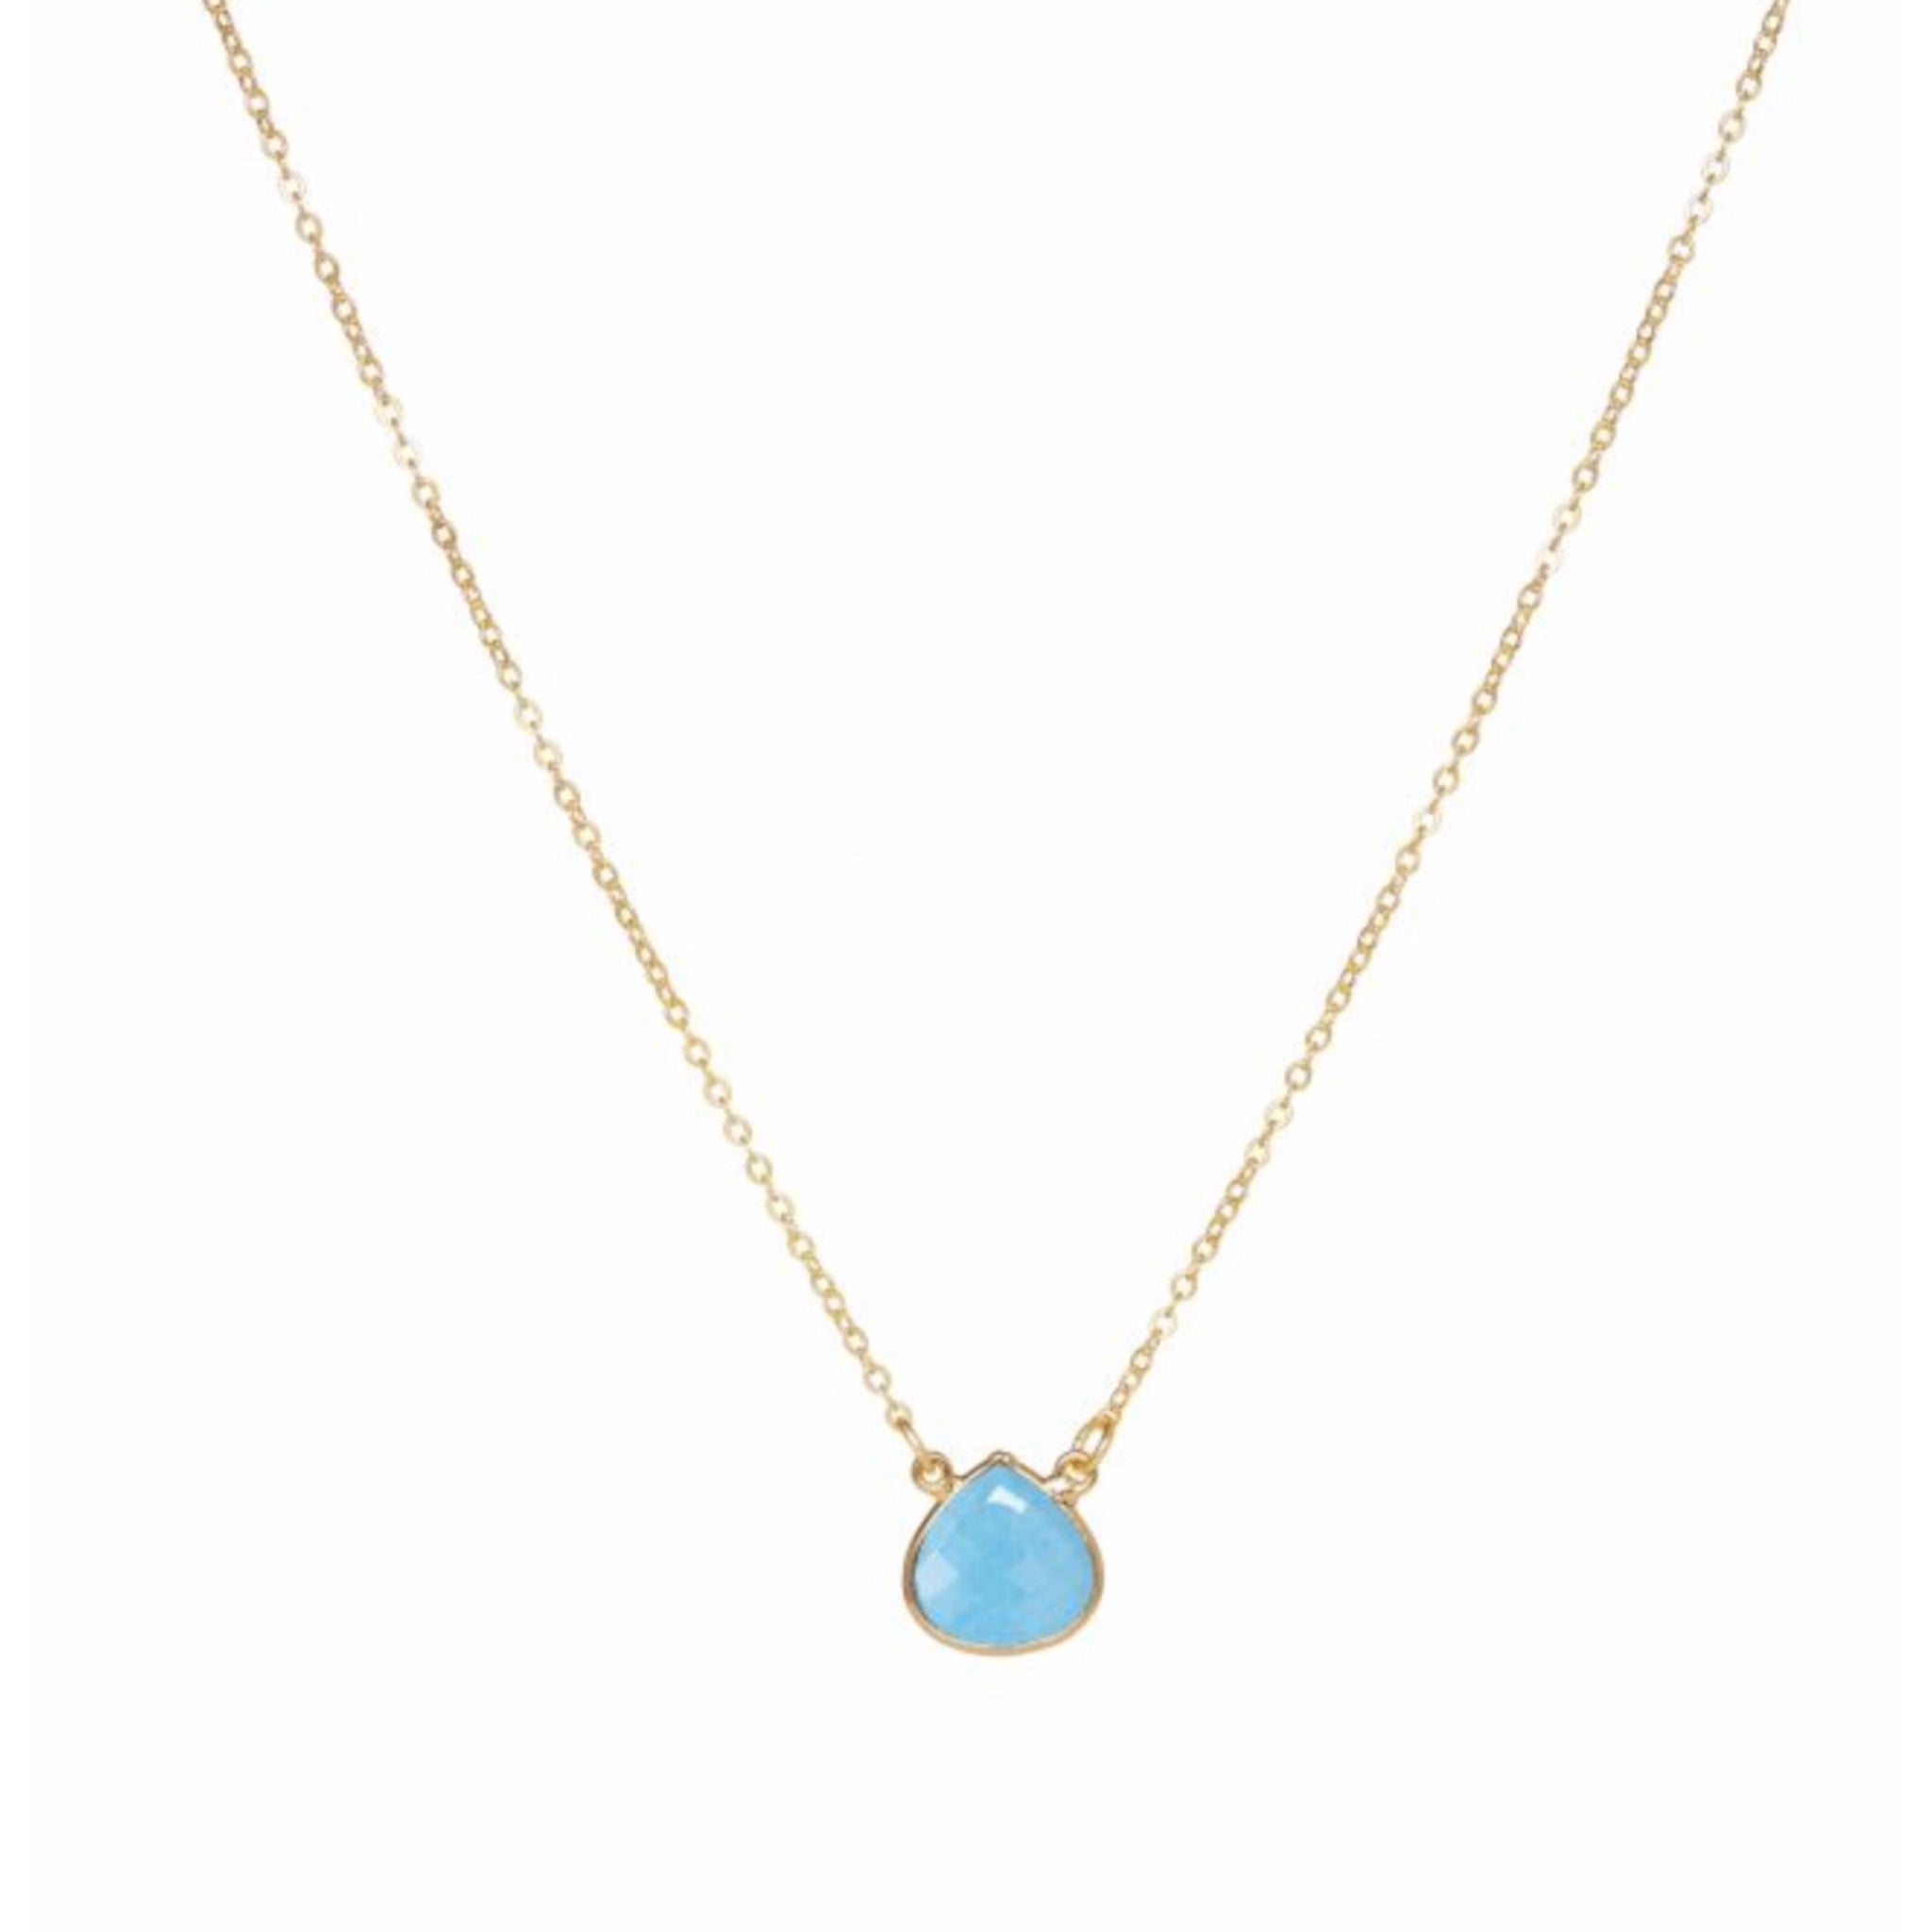 Small Teardrop Necklace Turquoise